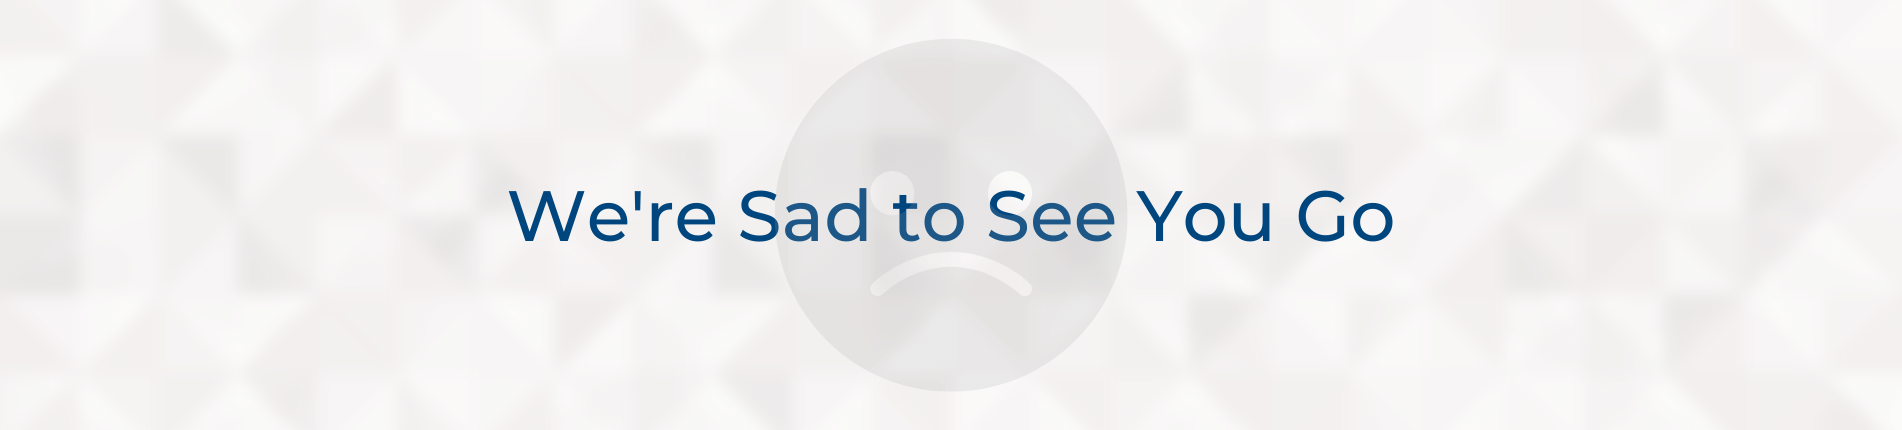 We're sad to see you go